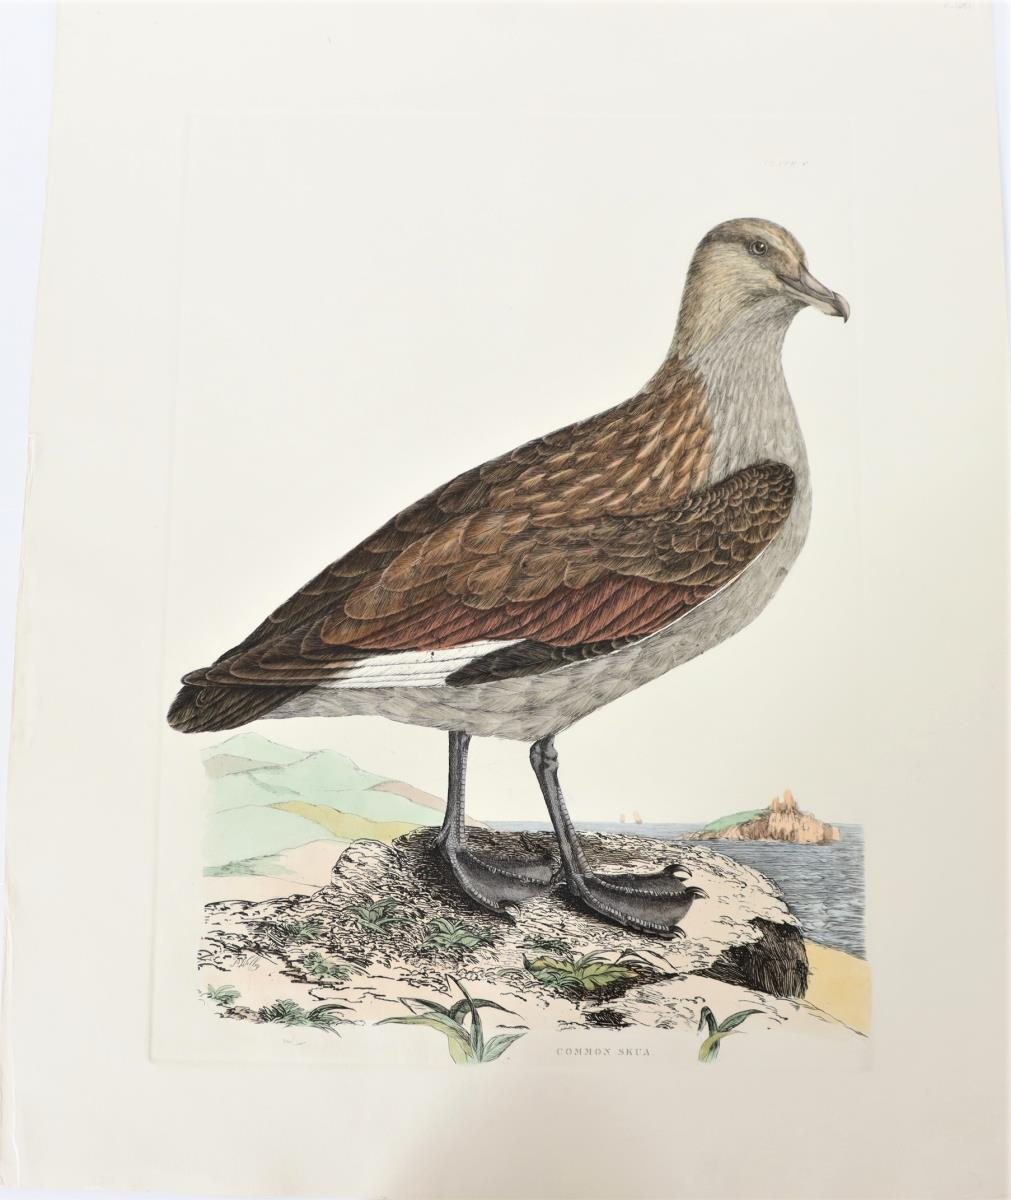 P J Selby, Hand-Colored Engraving, Common Skua - Image 2 of 4